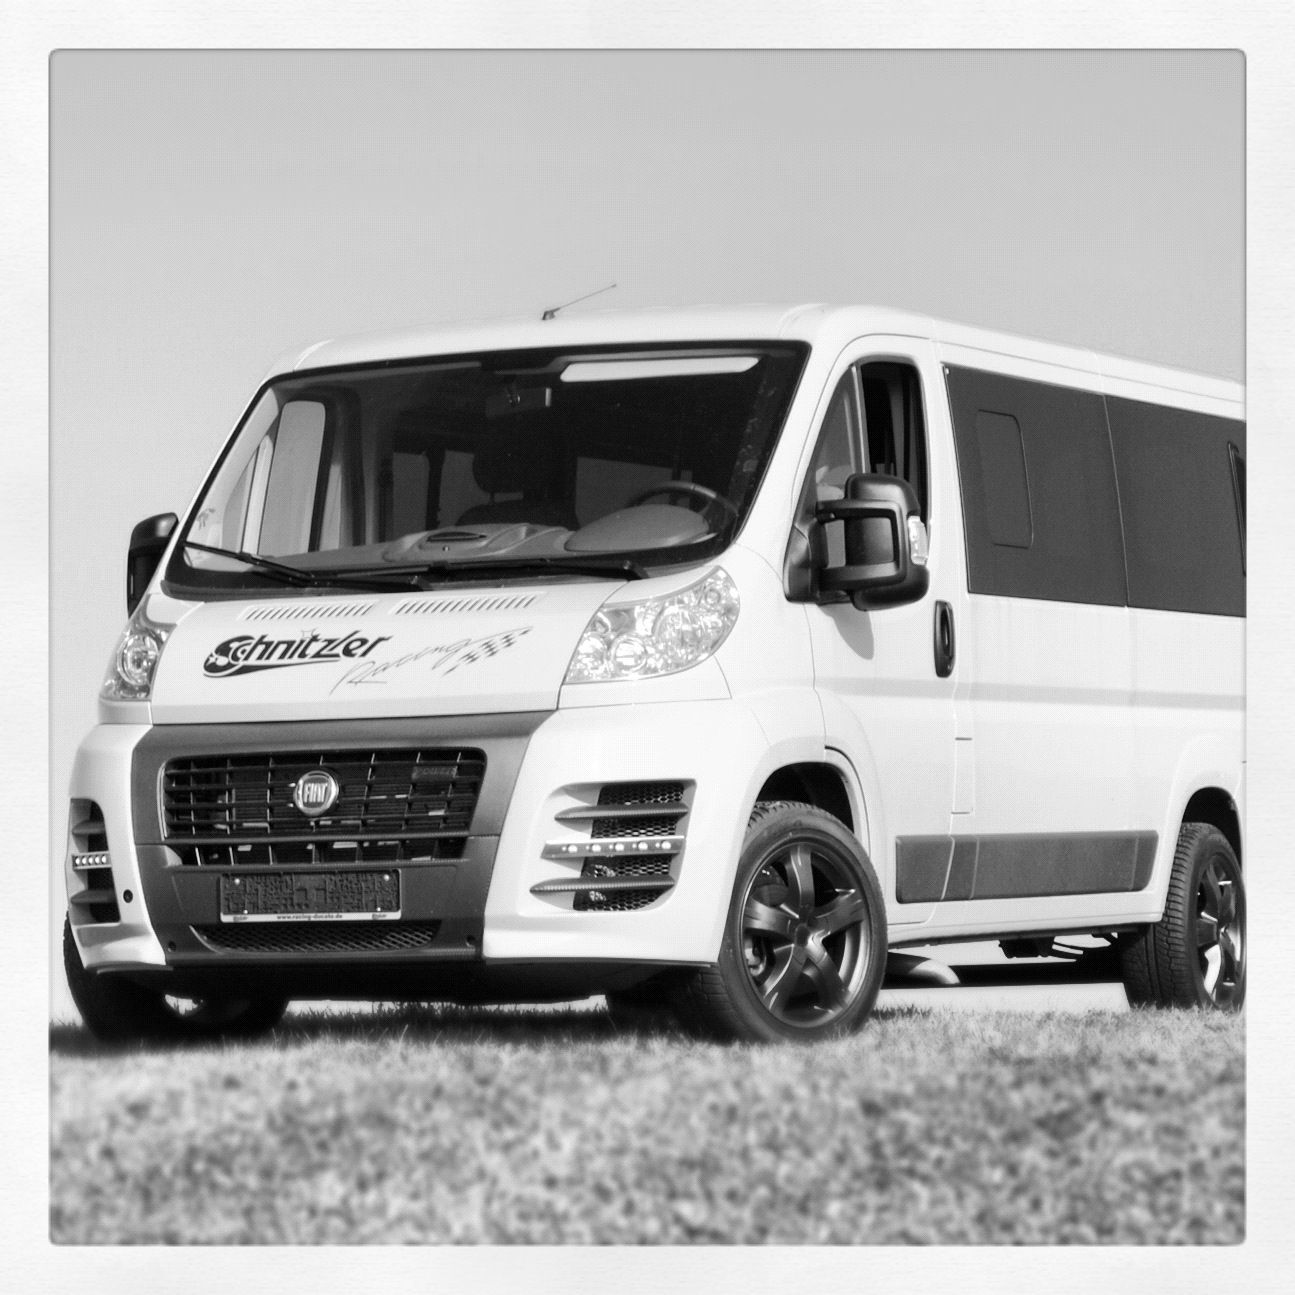 Fiat Racing Ducato Www Racing Ducato De With Images Mini Van